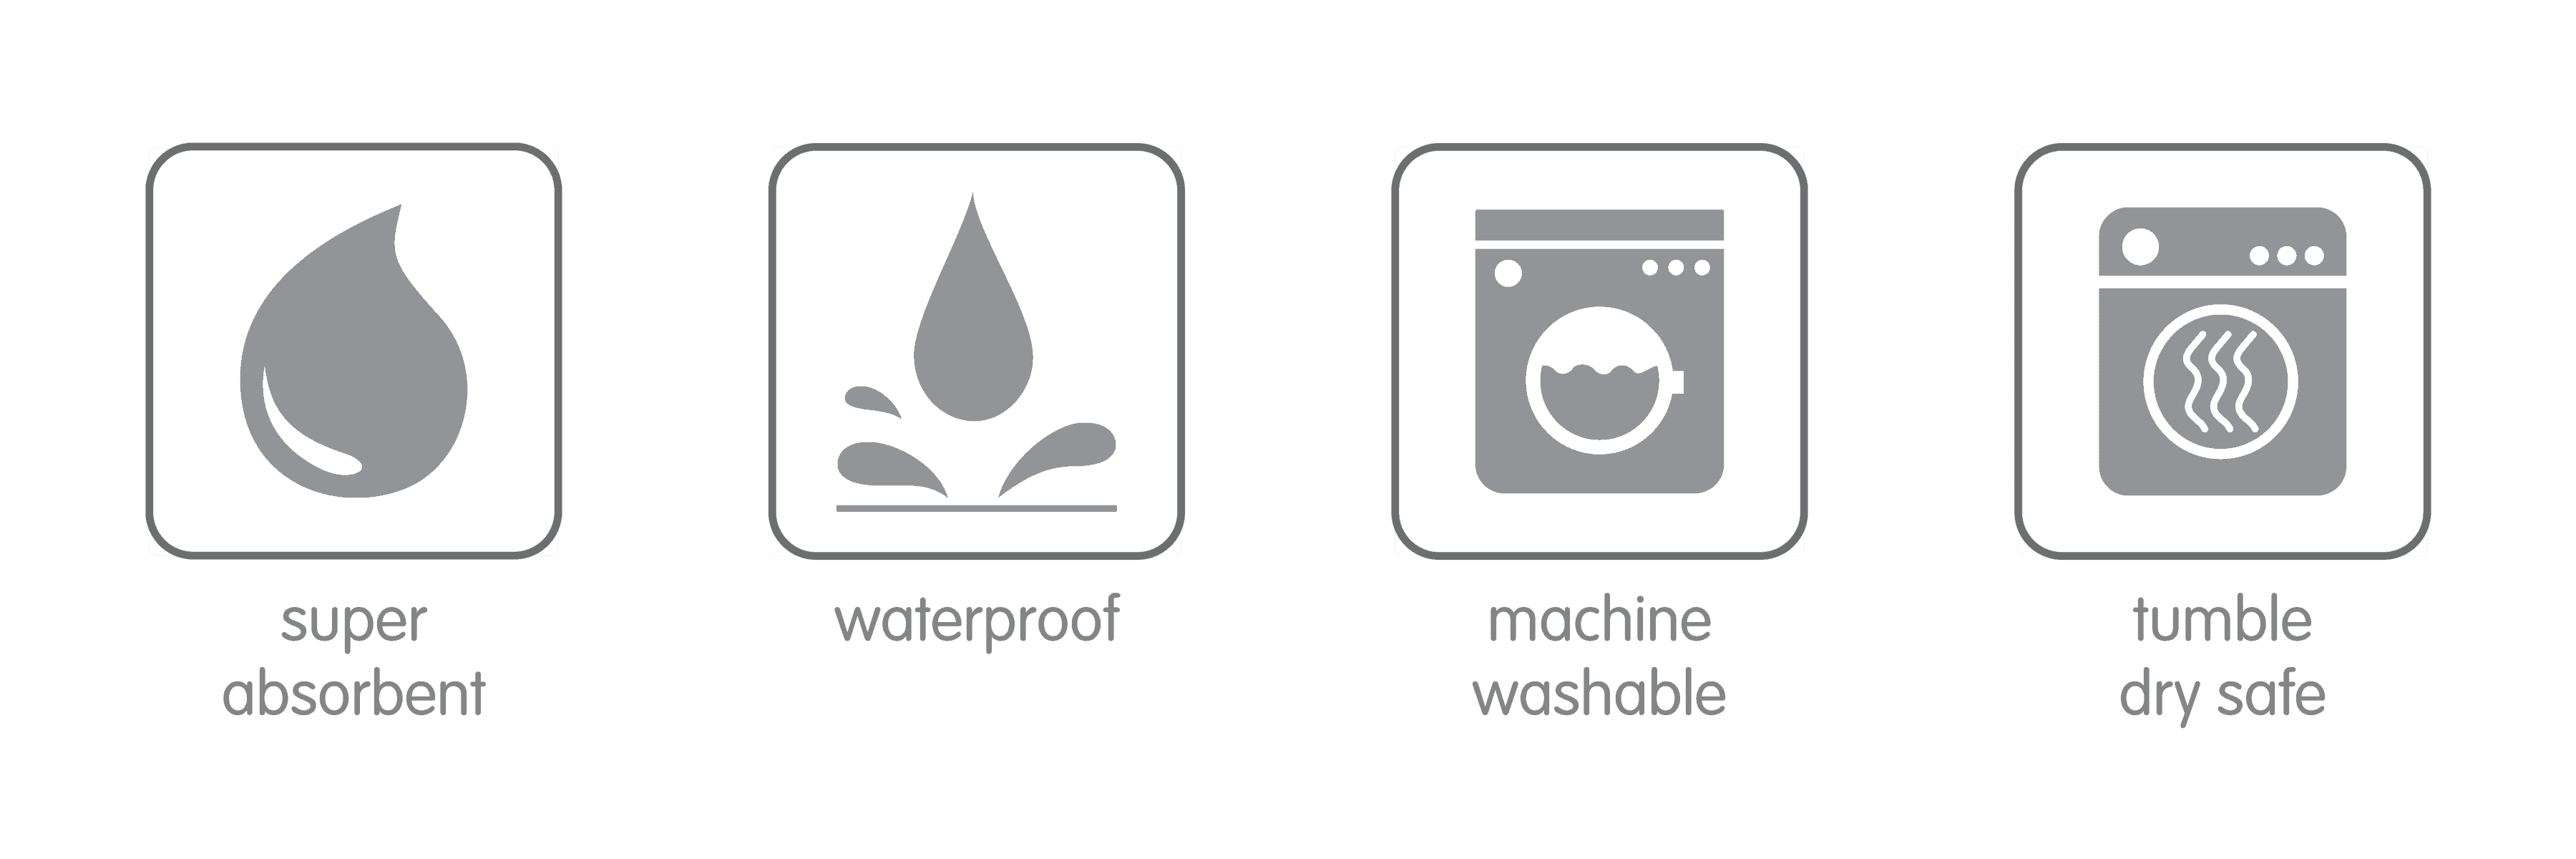 banner-3000x1000px-towel.png